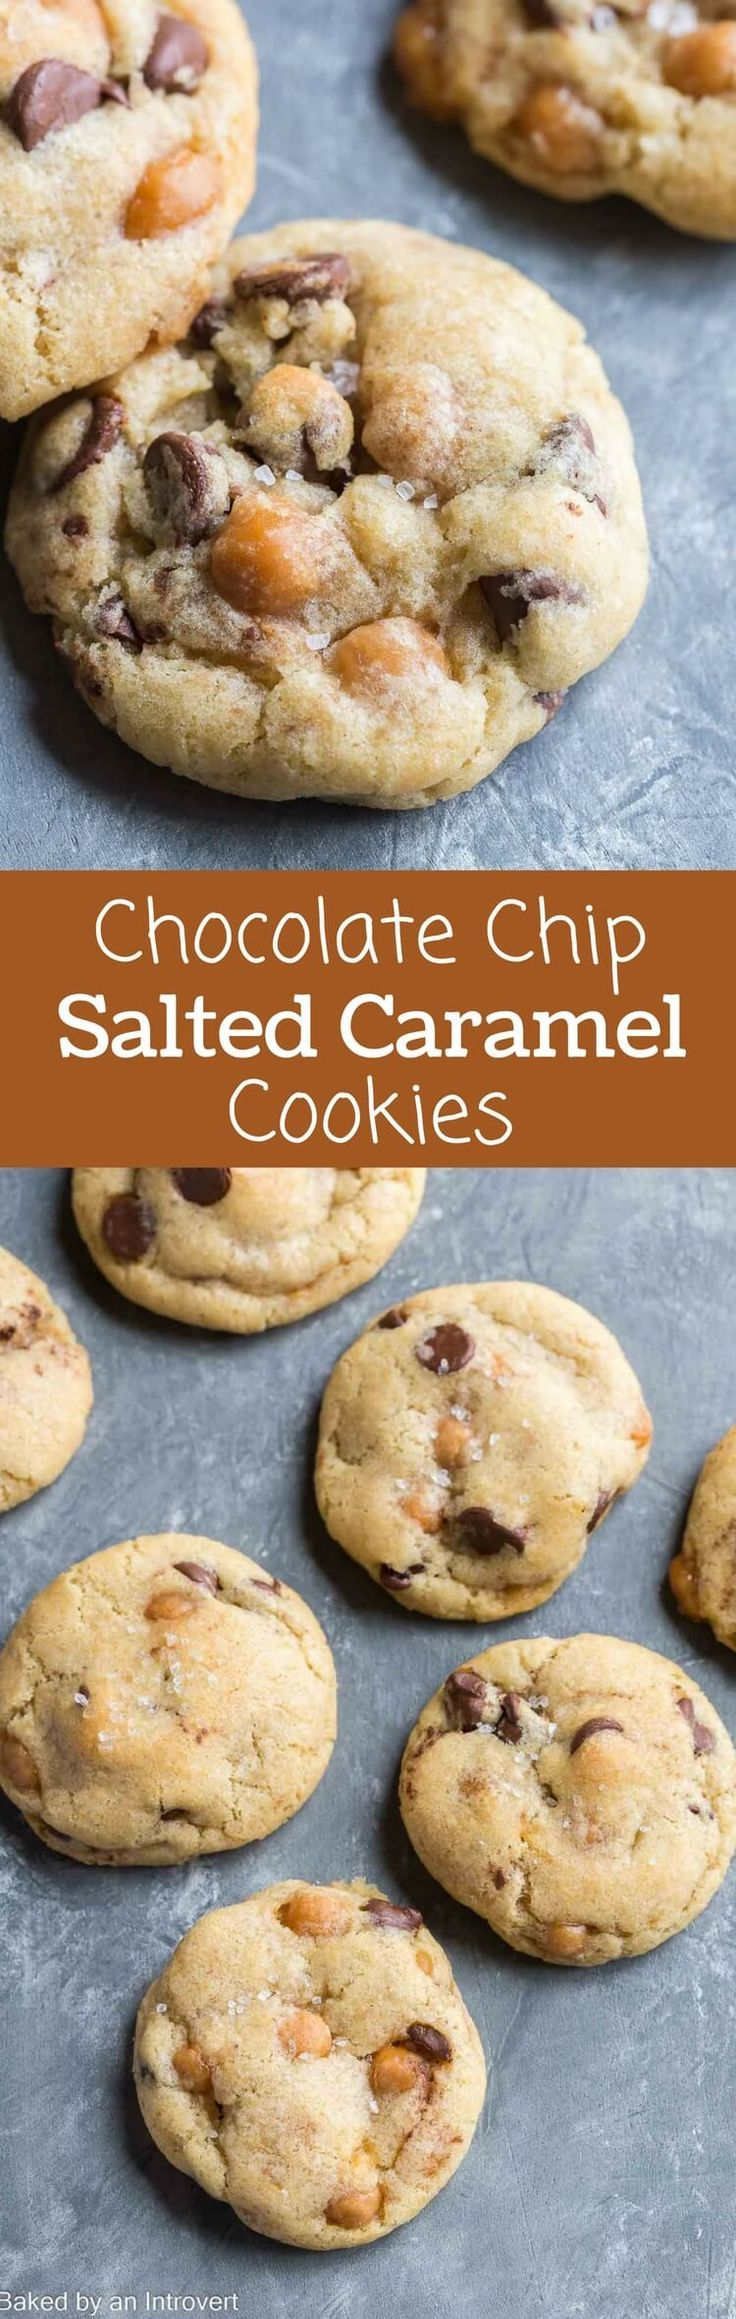 Soft and chewy Chocolate Chip Salted Caramel Cookies combine everyone's favorite flavors!  via Baked by an Introvert